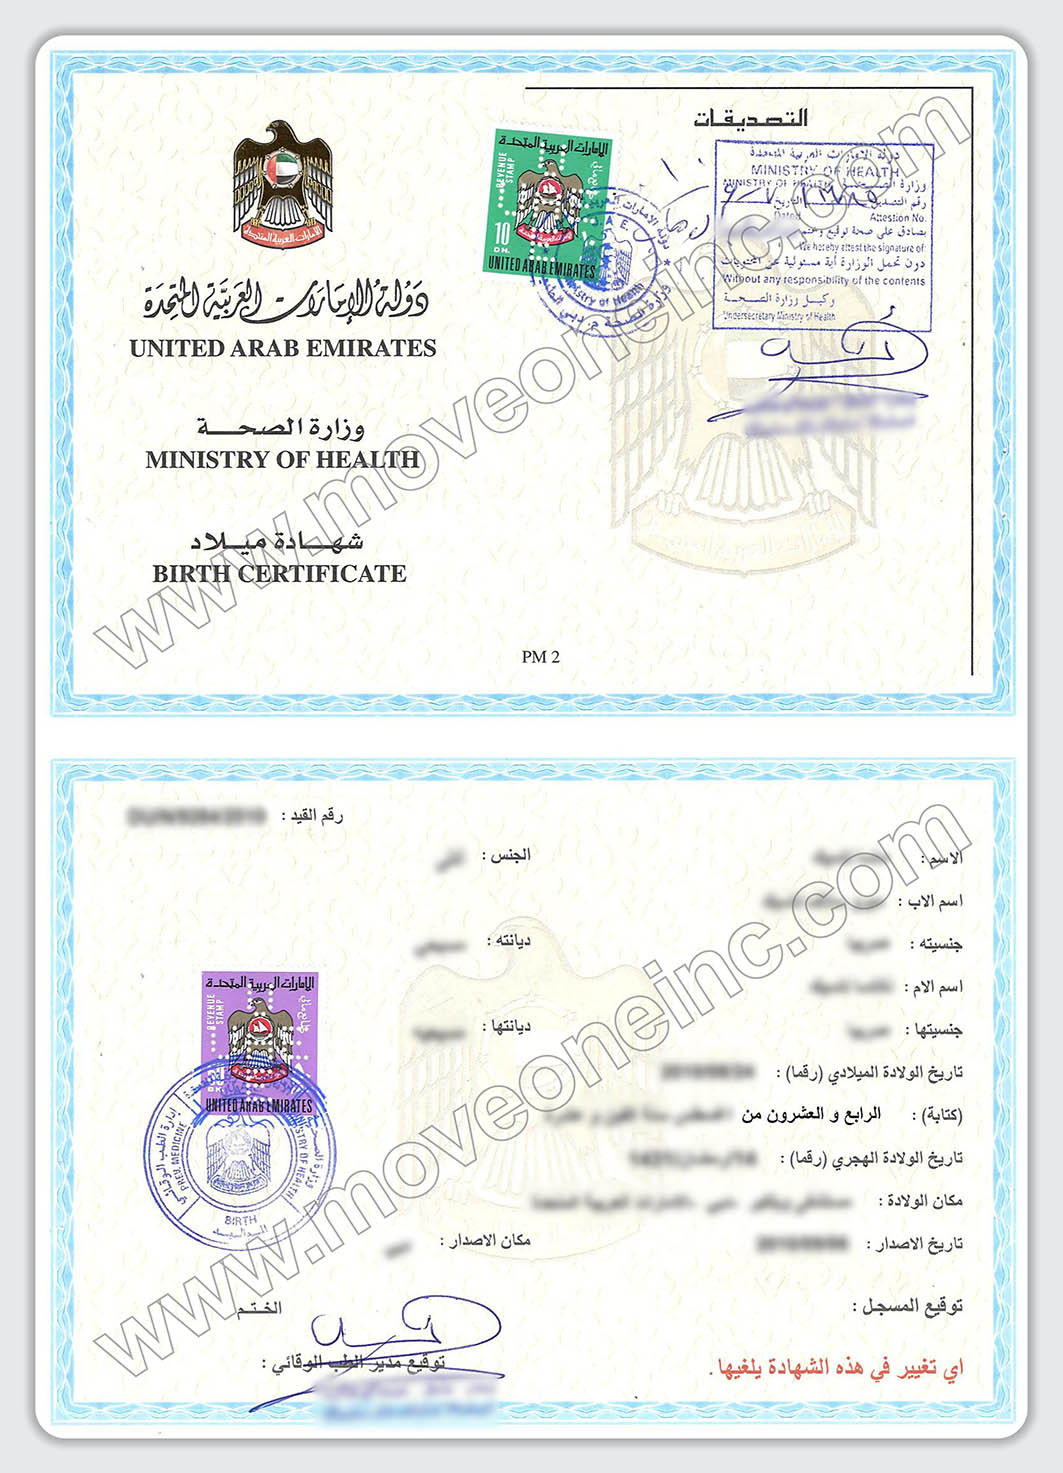 Images affidavit in lieu of birth certificate international images feed yelopaper Image collections